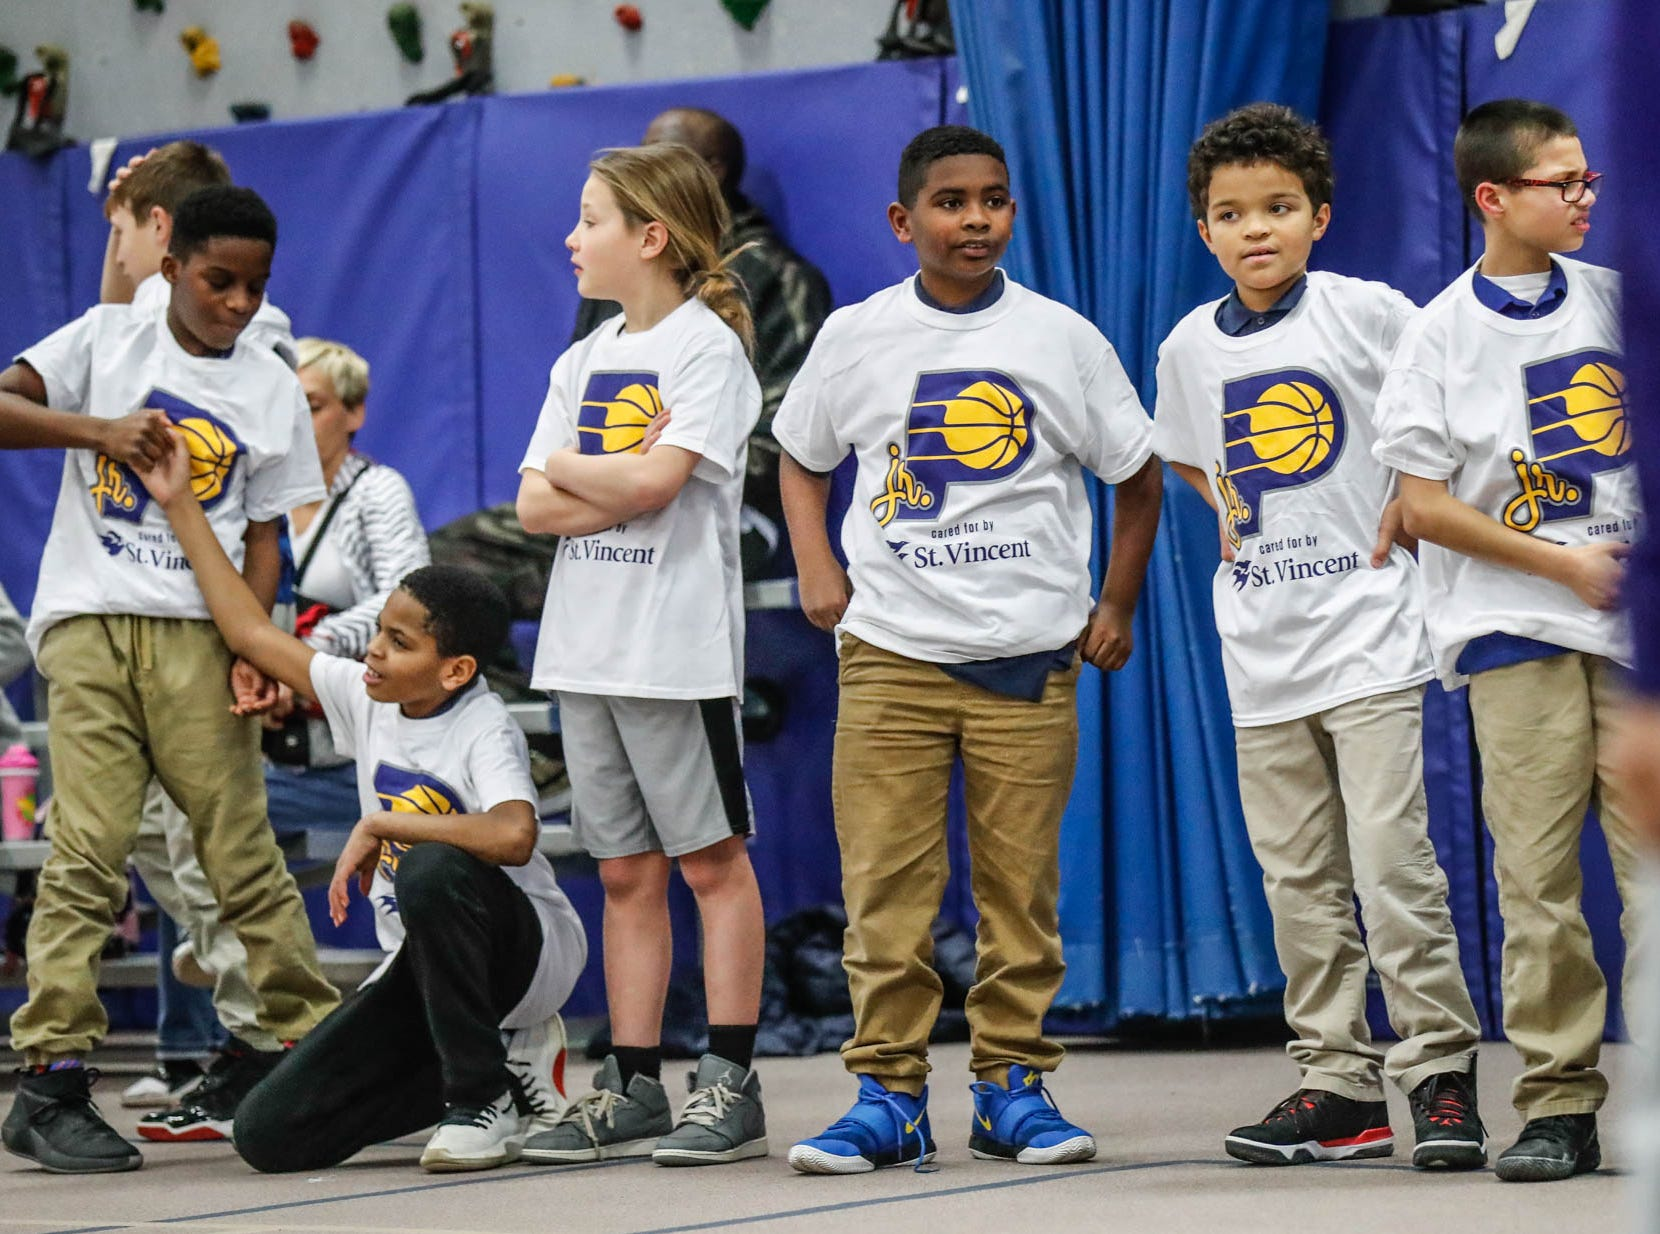 Children at Concord Neighborhood Center take part in a Jr. Indiana Pacers clinic, which included a surprise visit by Indiana Pacers guard Victor Oladipo on Monday, Jan. 14, 2019.